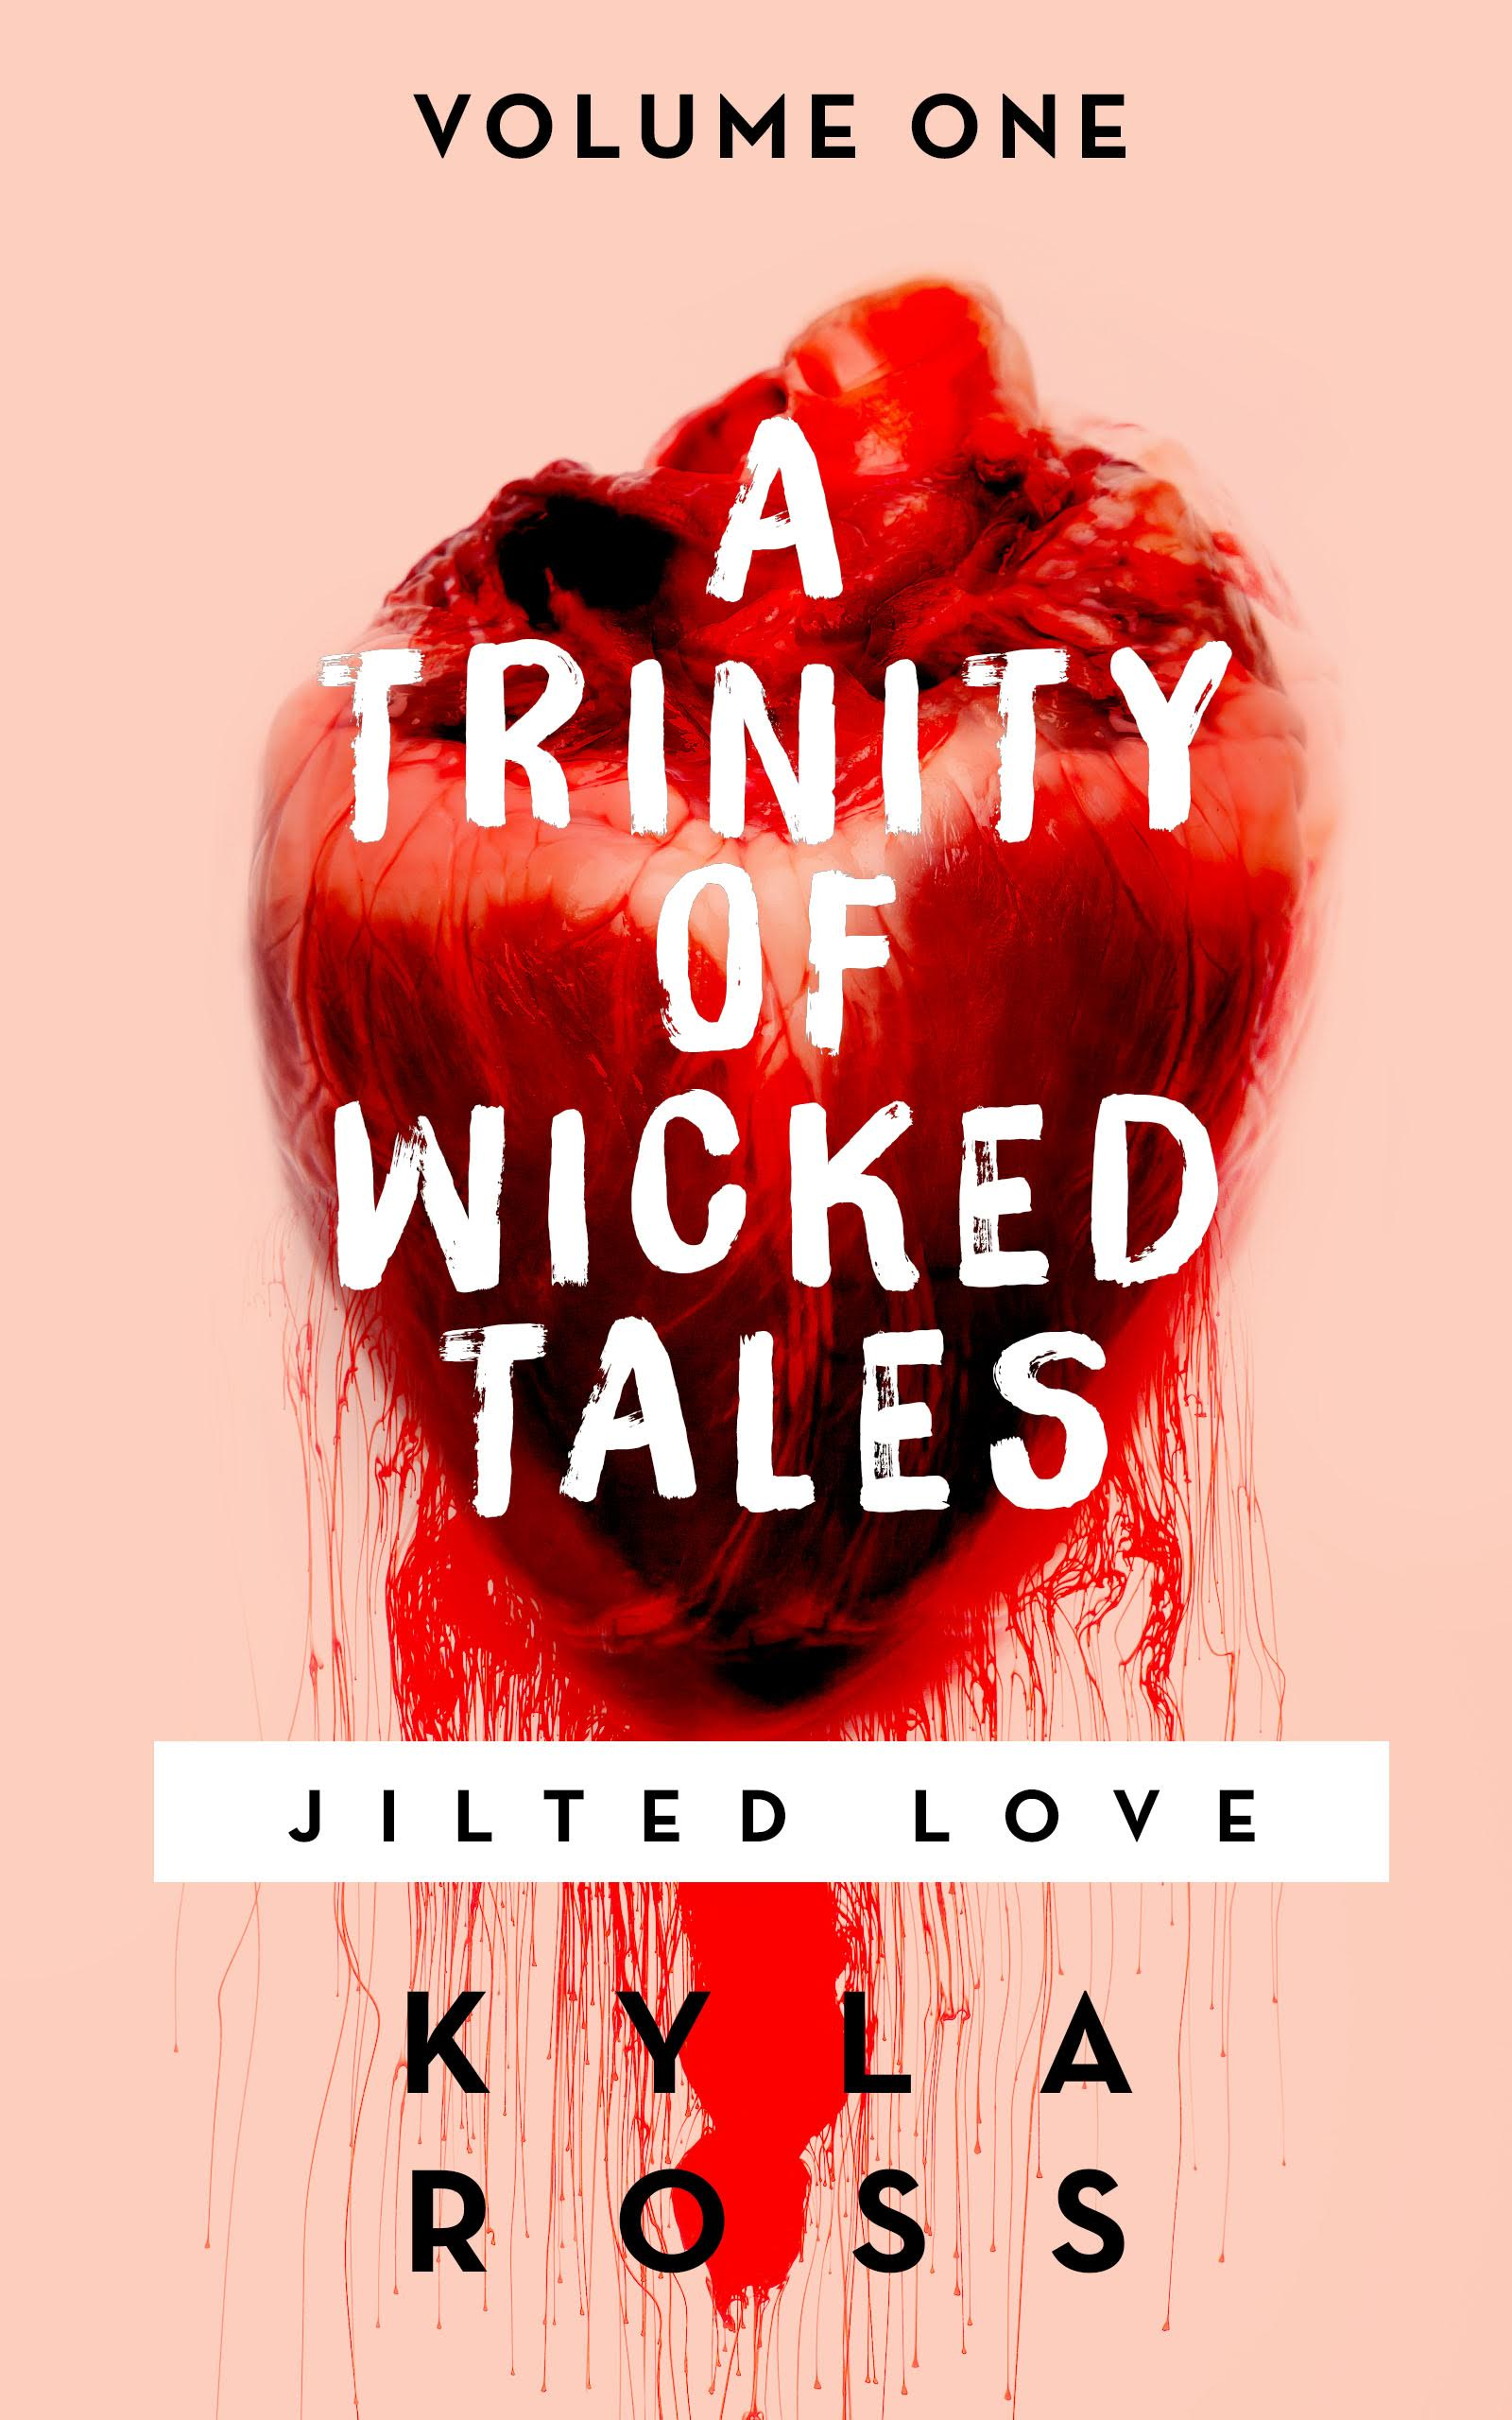 A Trinity of Wicked Tales: Jilted Love by Kyla Ross